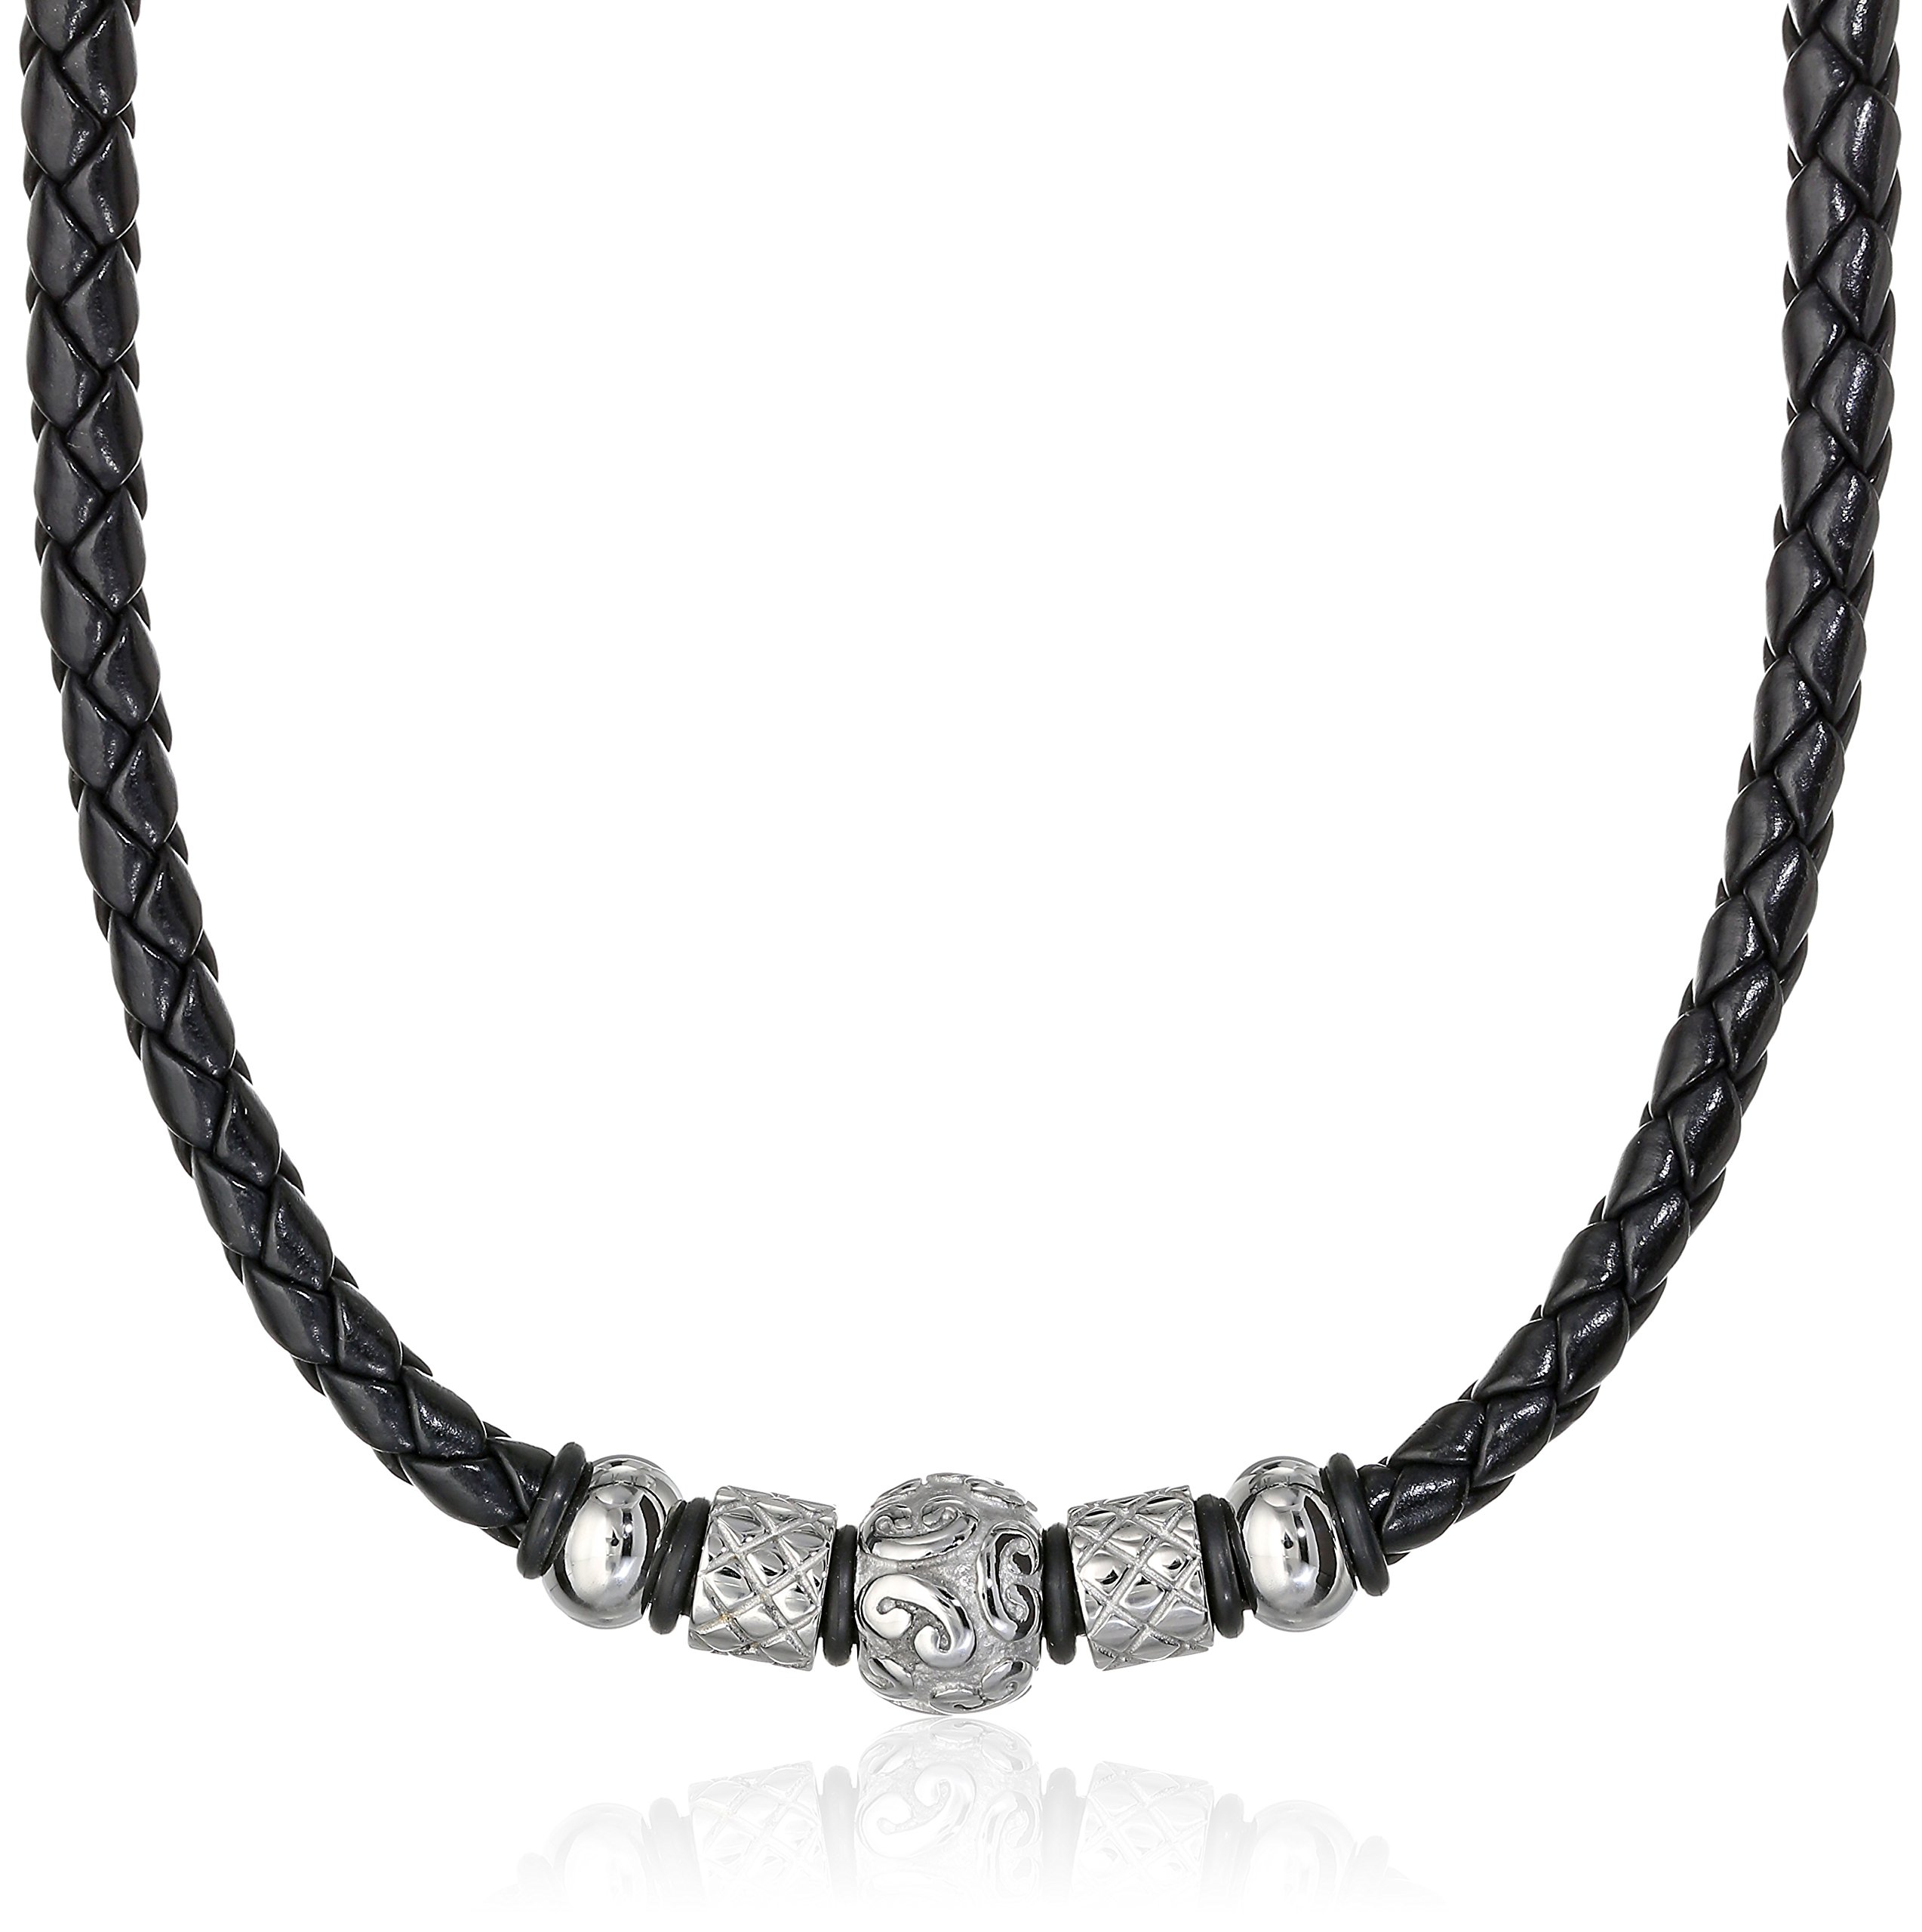 Cold Steel Men's Stainless Steel Tribal Bead Black Leather Necklace, 20''